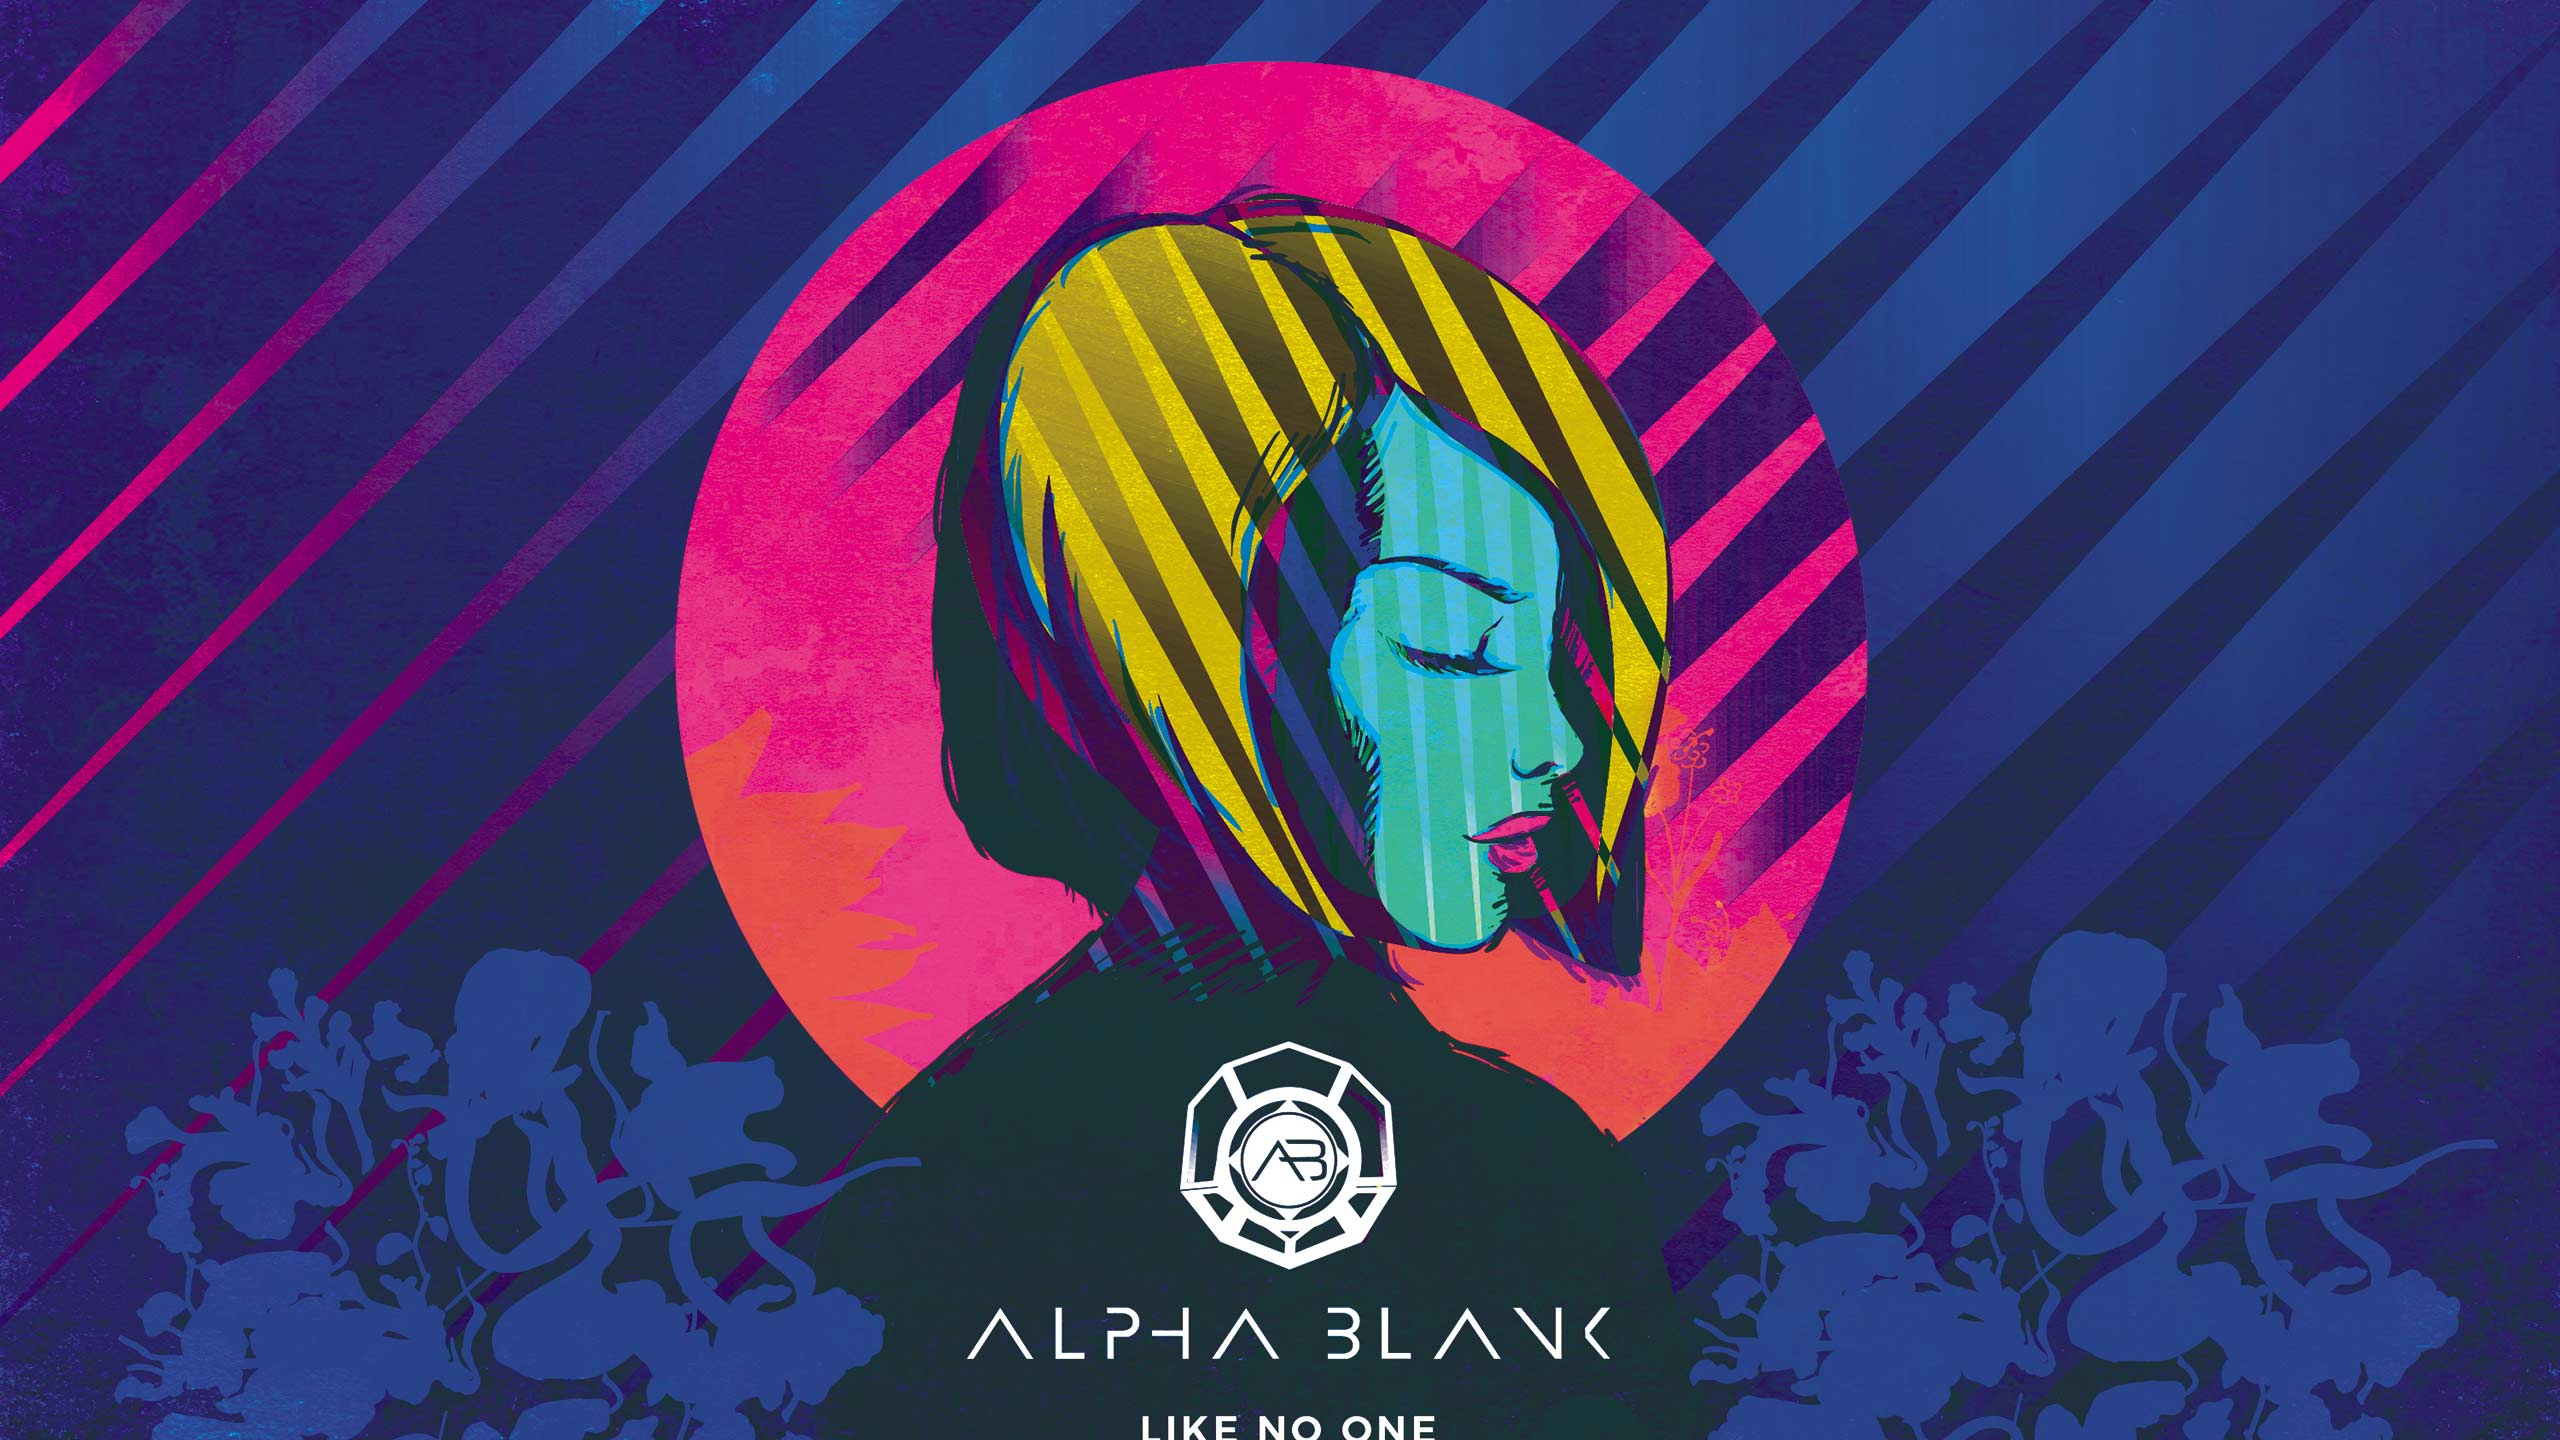 Artworking du single Like No one pour le groupe Alpha Blank